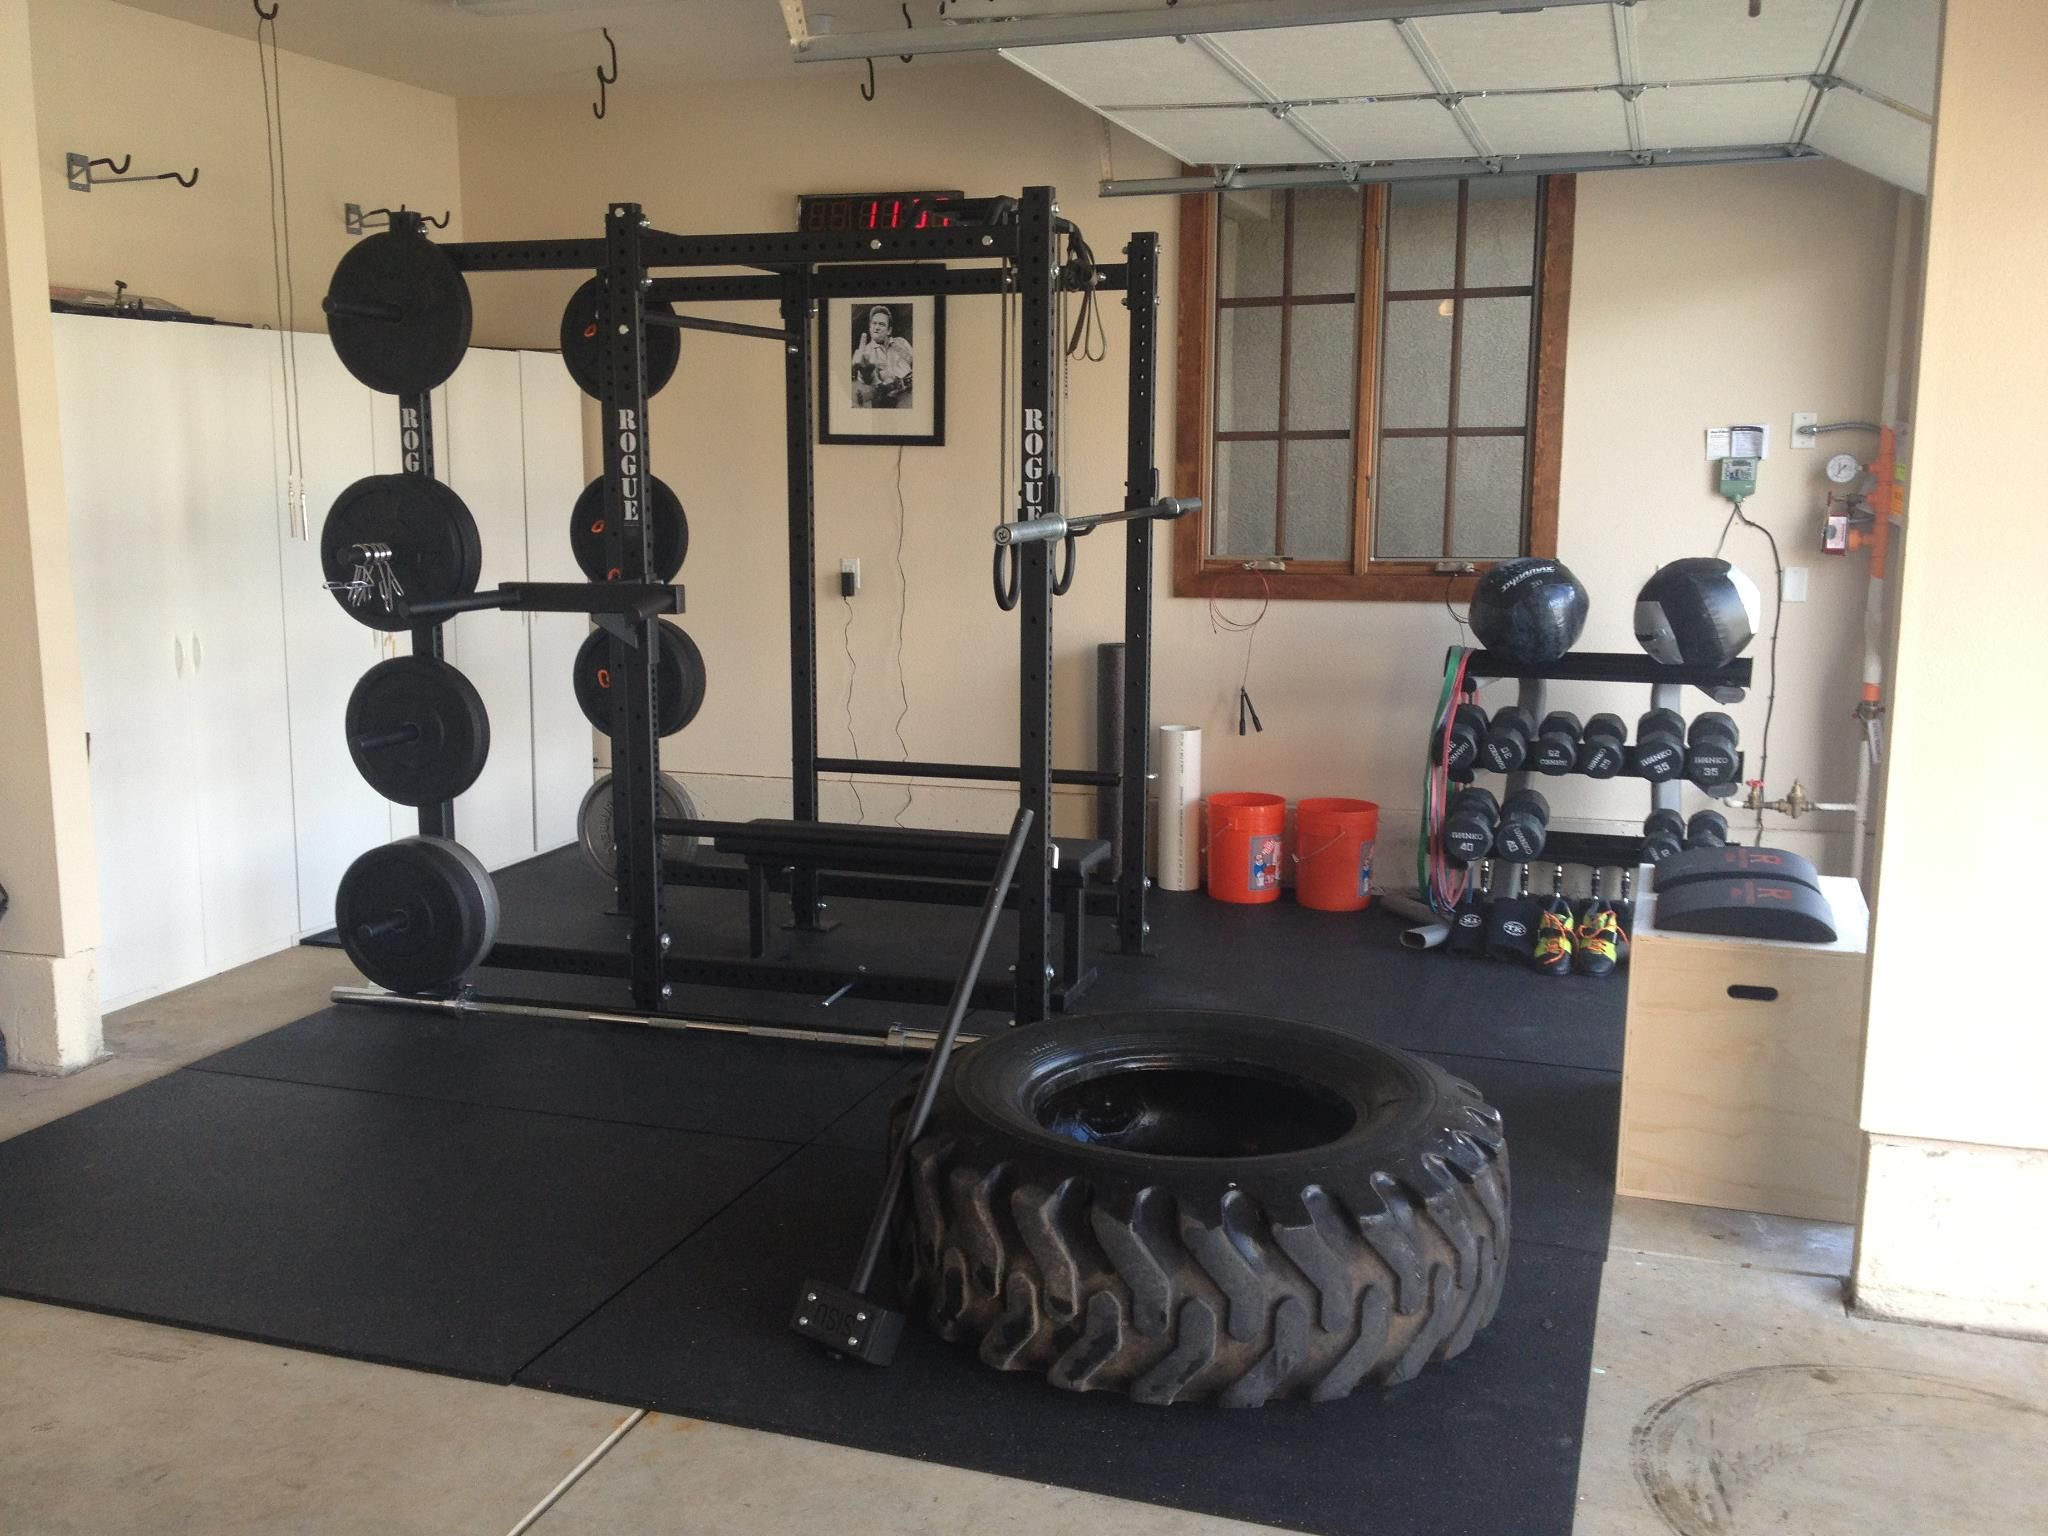 Garage gym photos inspirations ideas gallery page weight